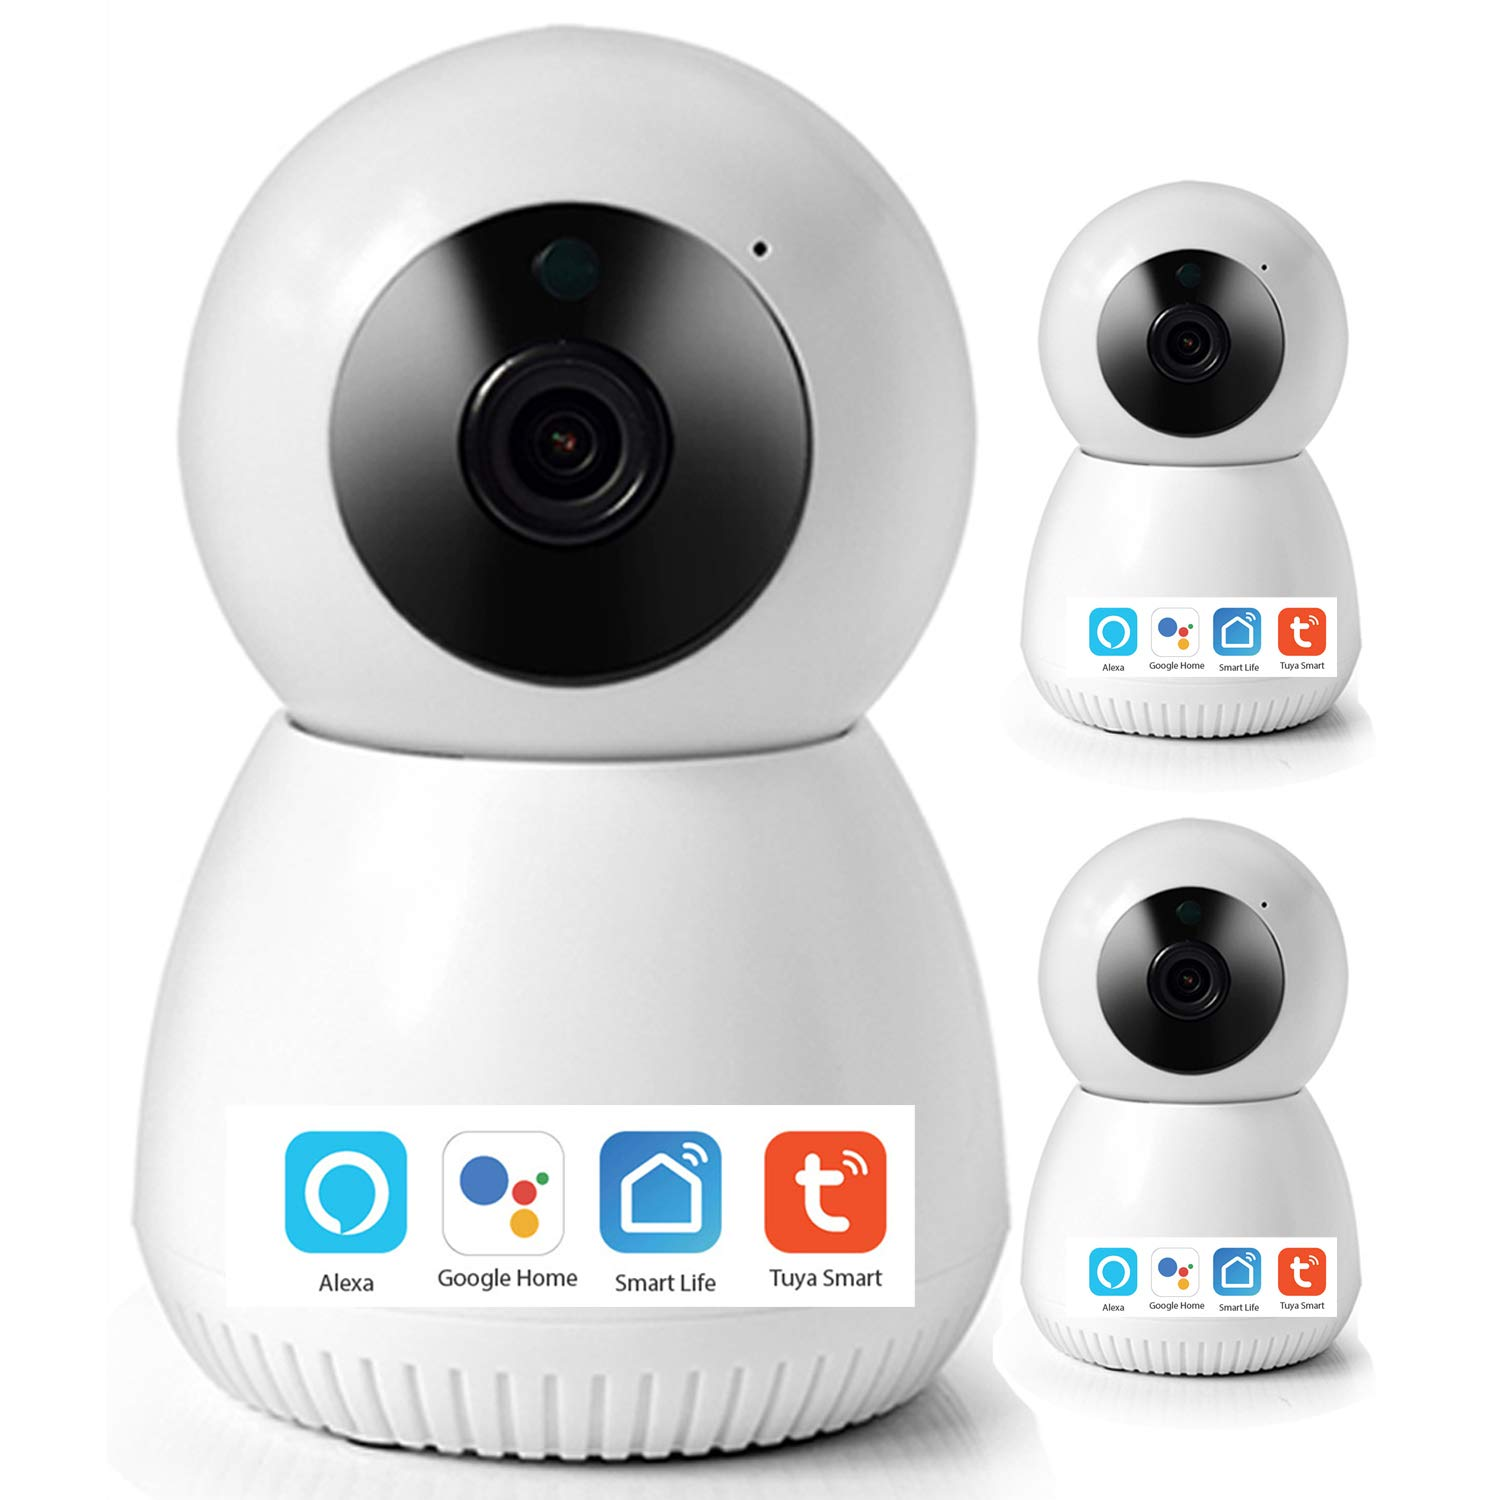 1080P Wireless Emergency Surveillance Camera Night Vision Smart Home Security Camera 2MP 2-Way Audio Motion Detection WiFi Baby Monitor Camera Works with Echo, Google Home Hub, Phone App(A, 3 Pack)